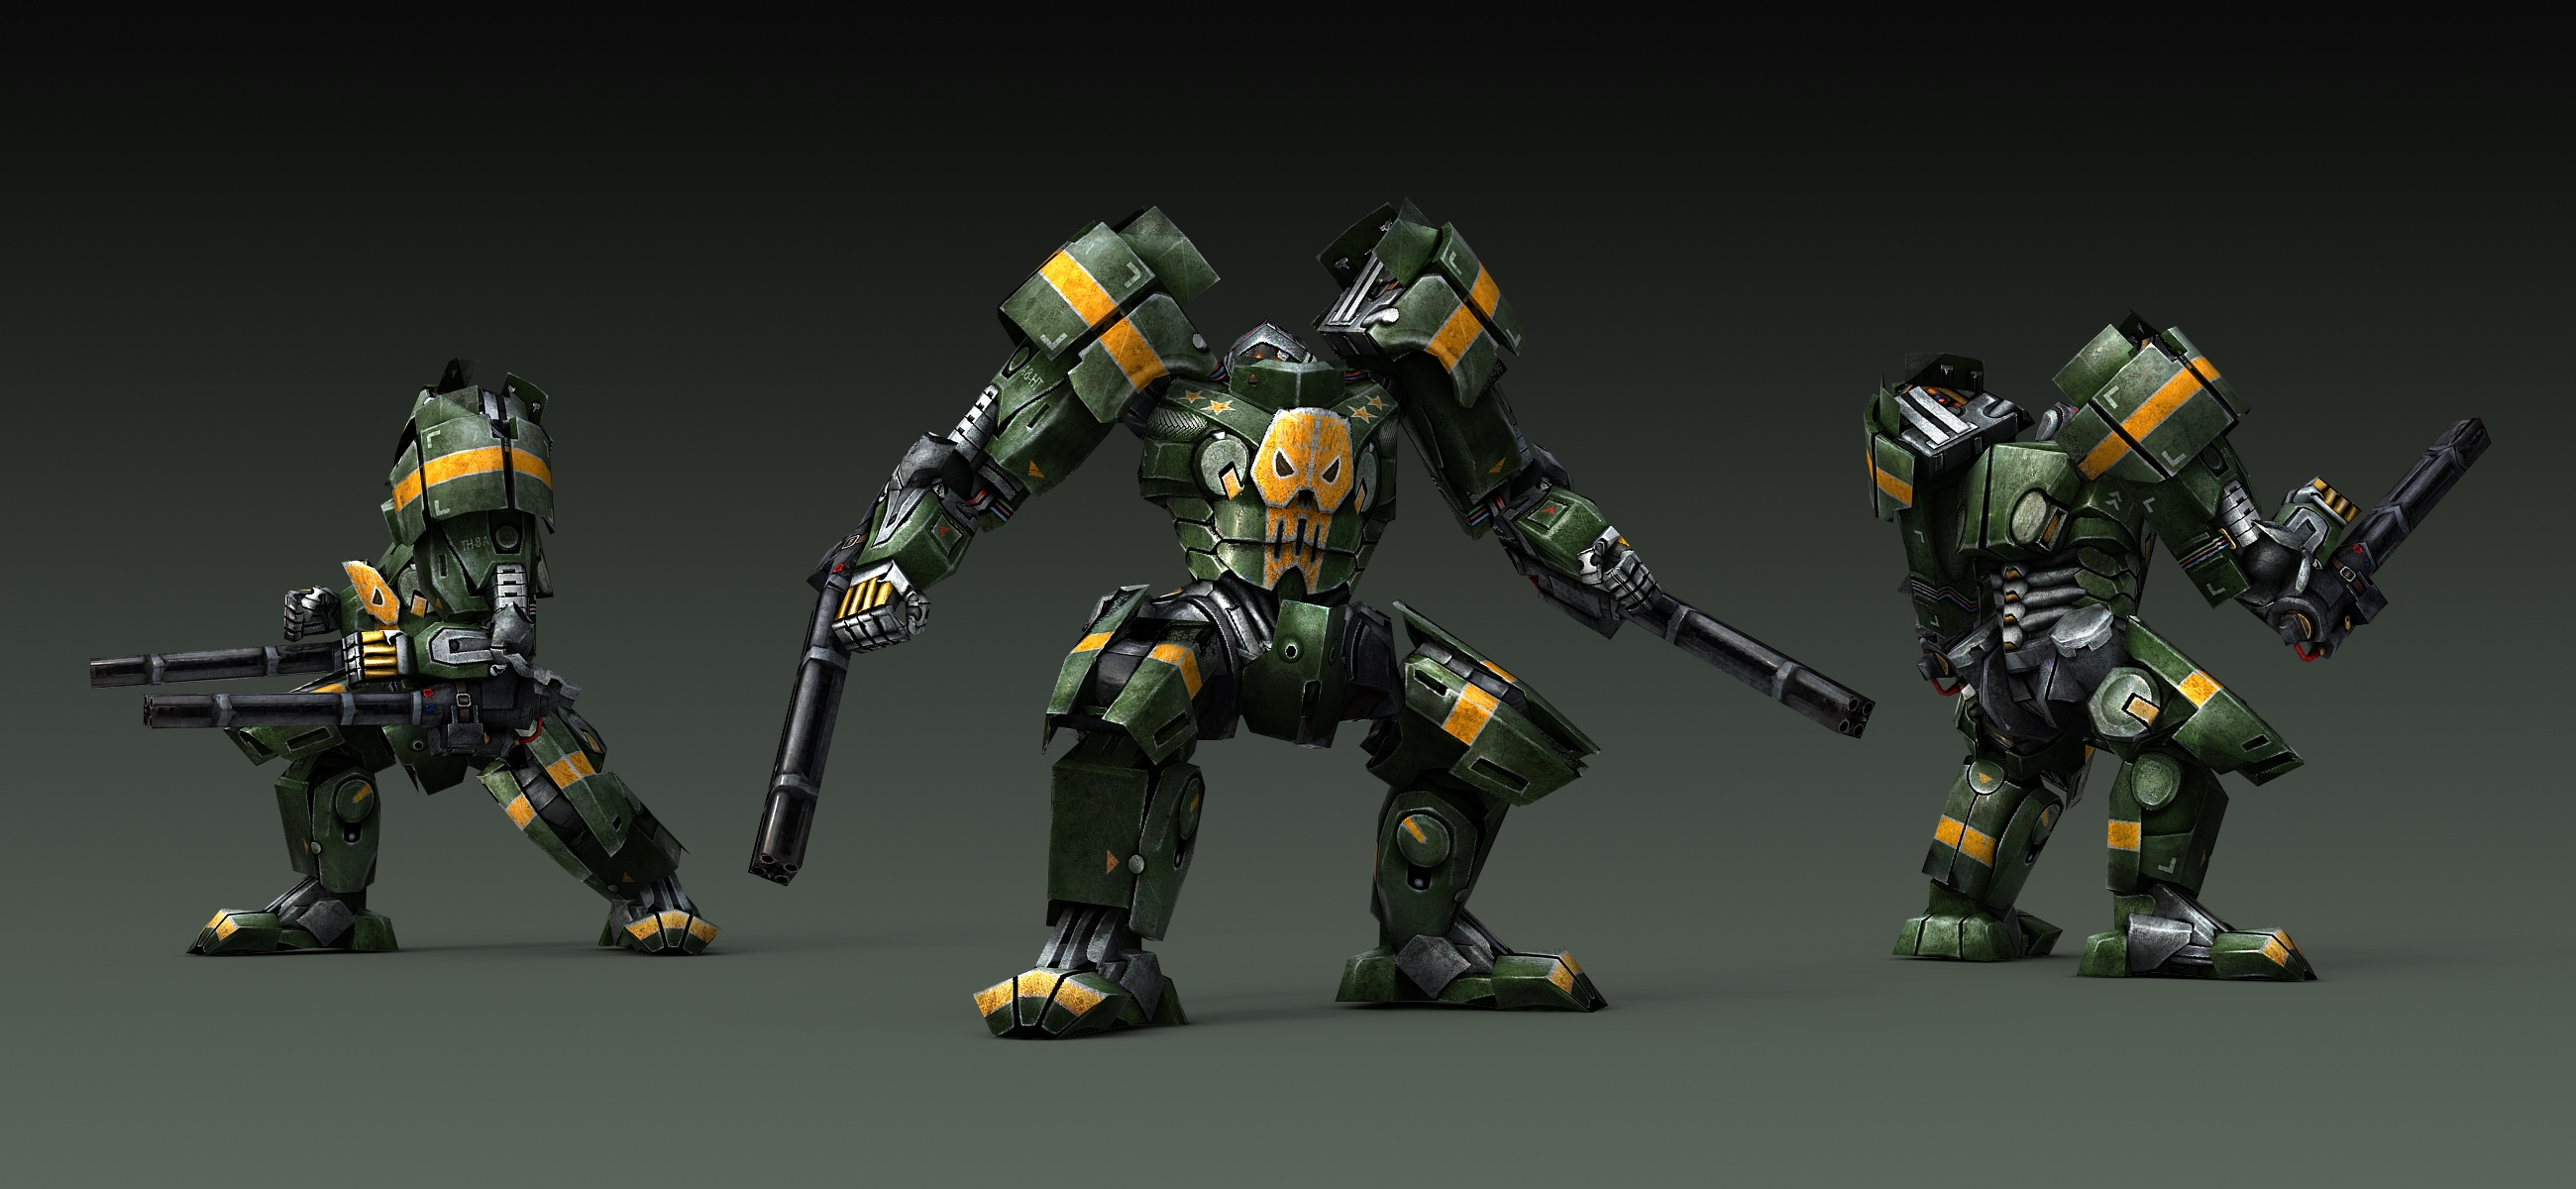 General Kurbatov's Exoskeleton Rendering (Final Version)